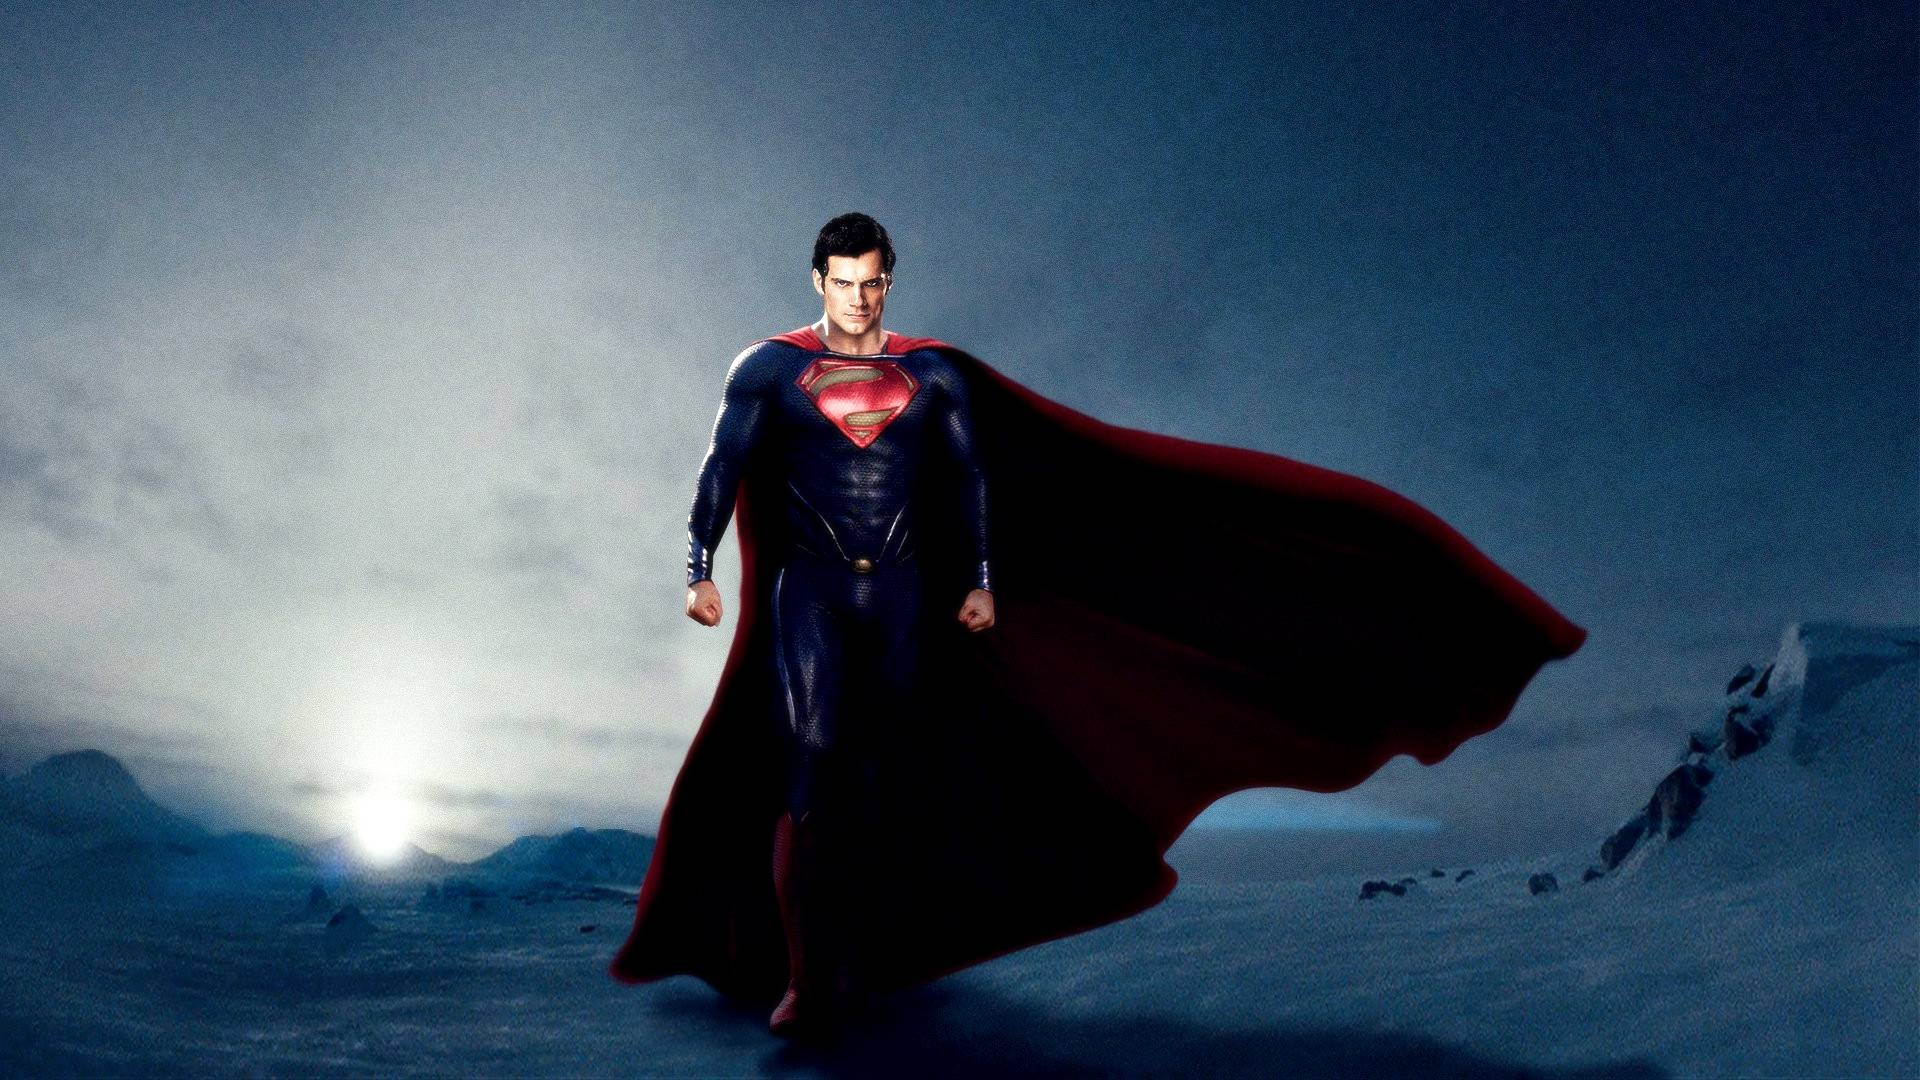 Superman in Man of SteelHD WallpapersImagesPictures 1920x1080